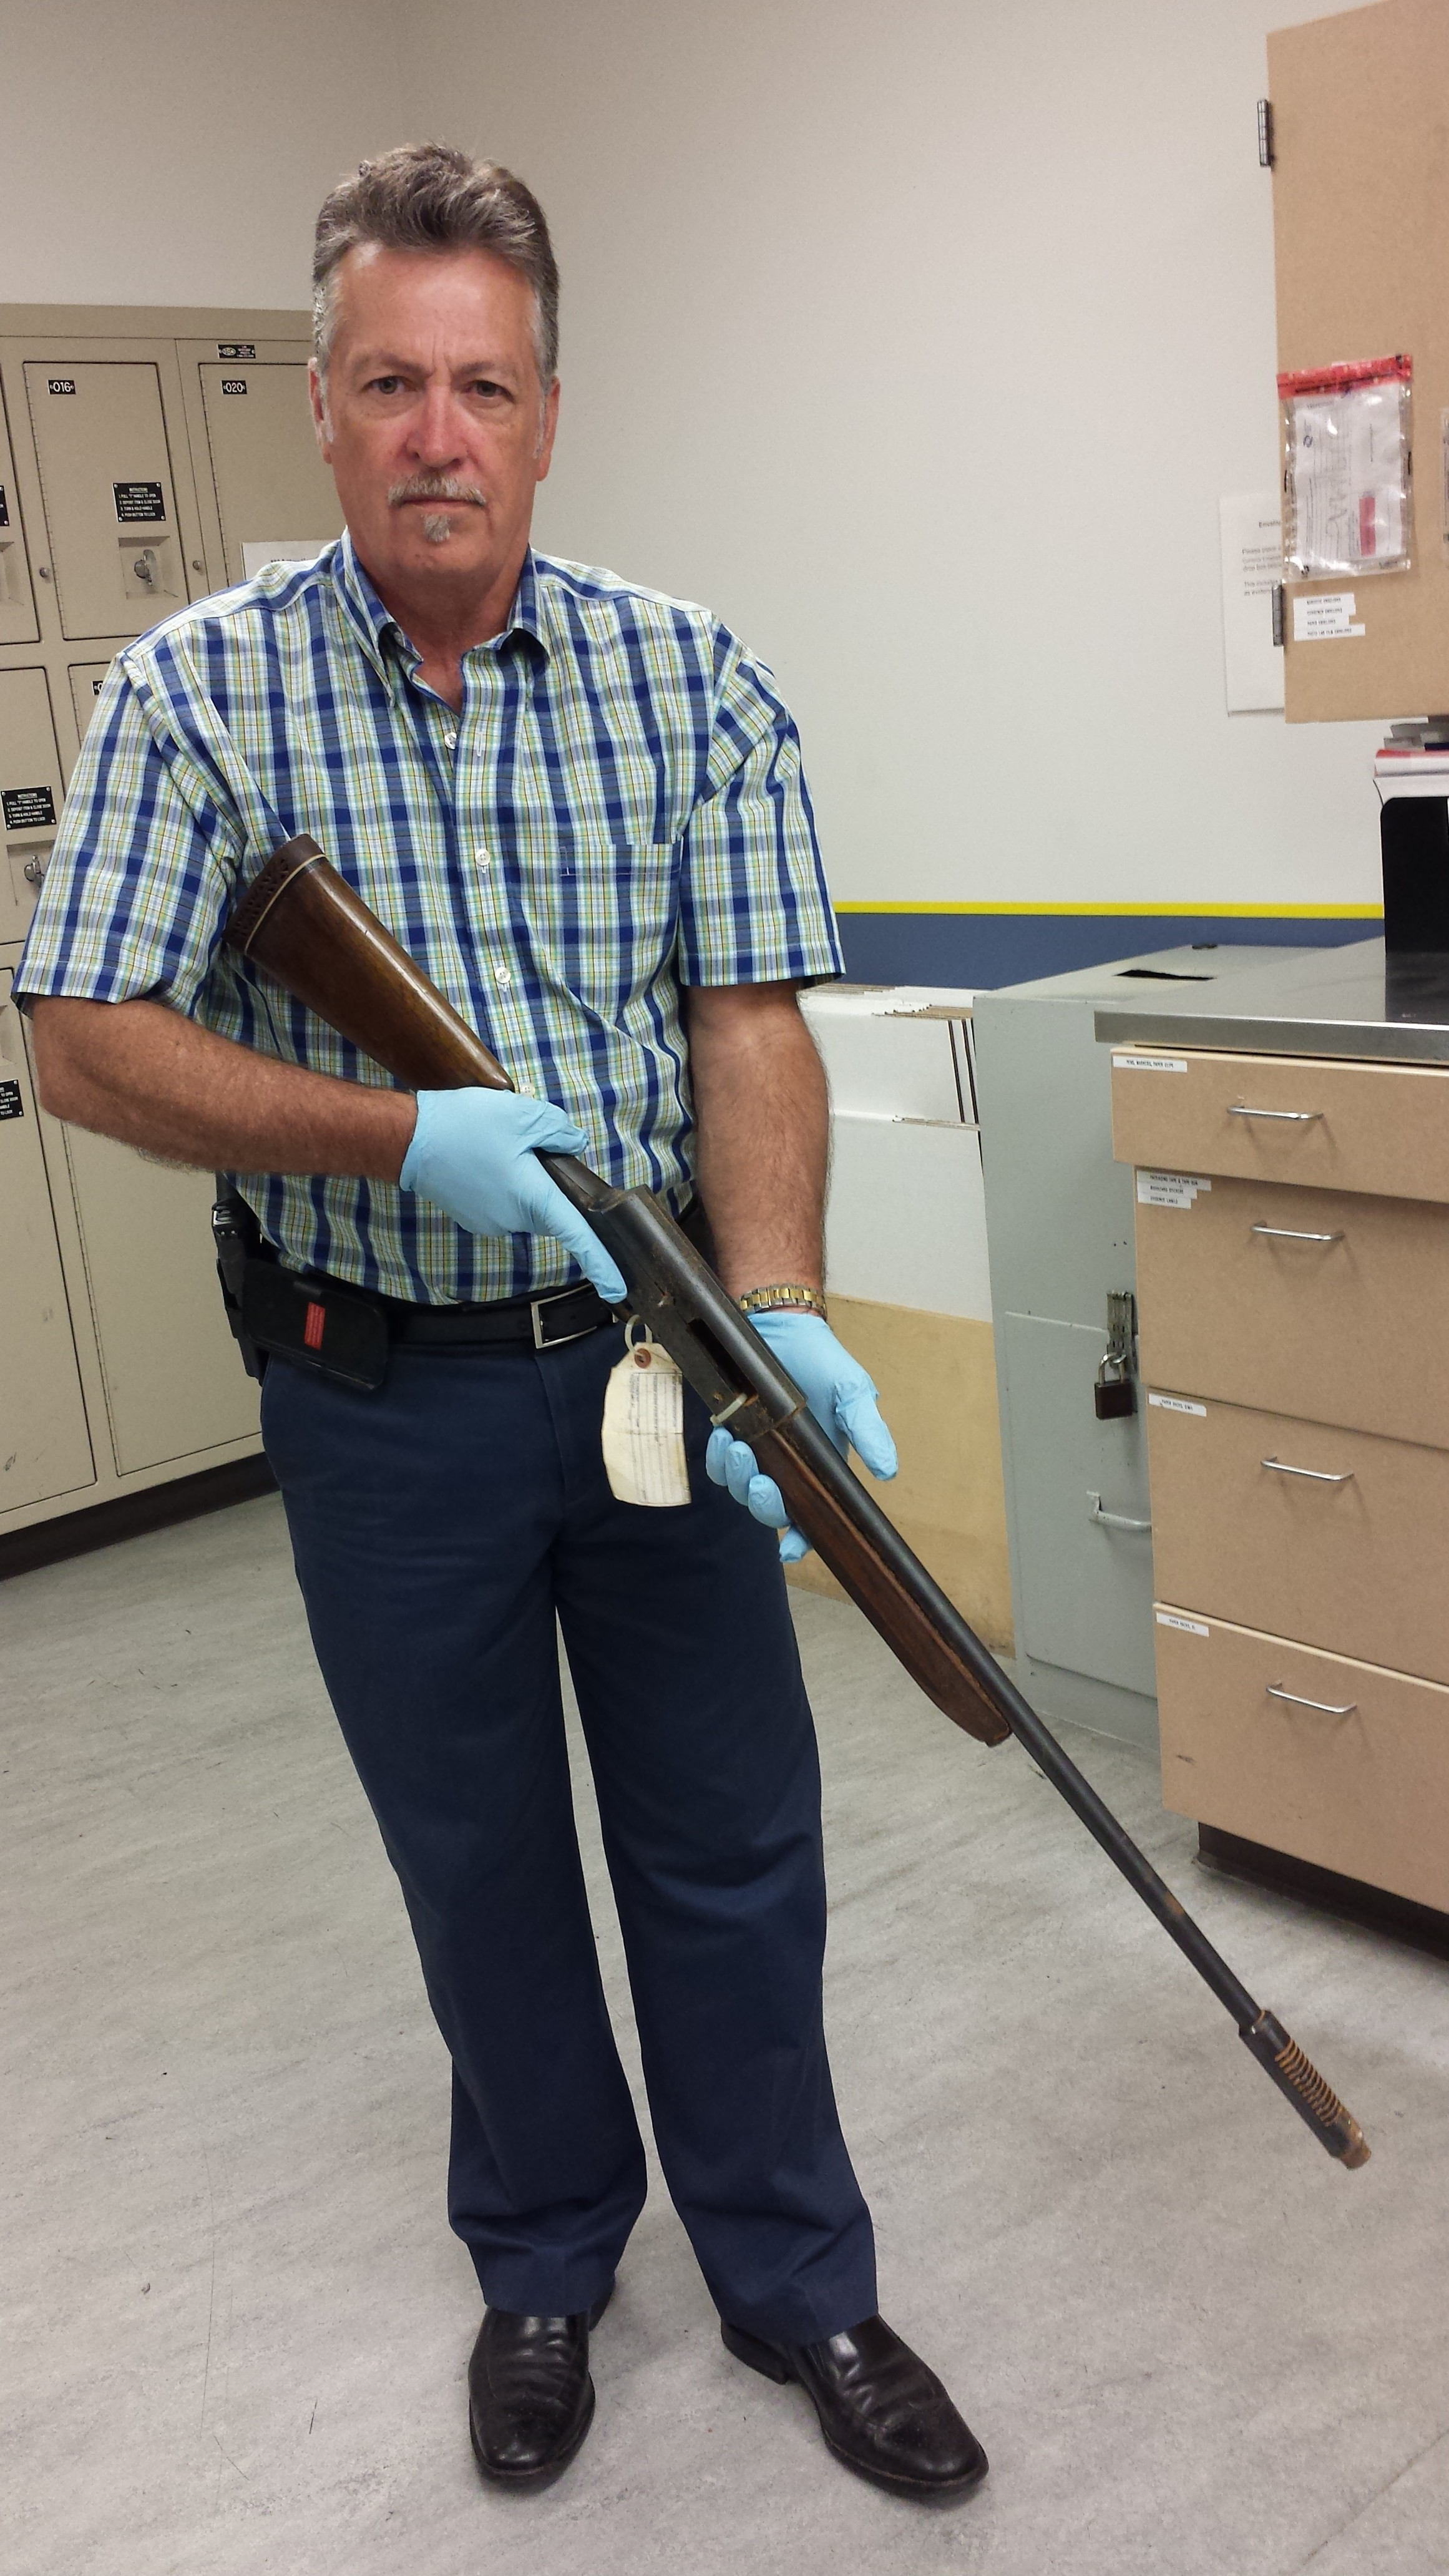 Here shows the gun musician Kurt Cobain used in his suicide. (Photo courtesy of SPD Blotter/Seattle Police Department.)